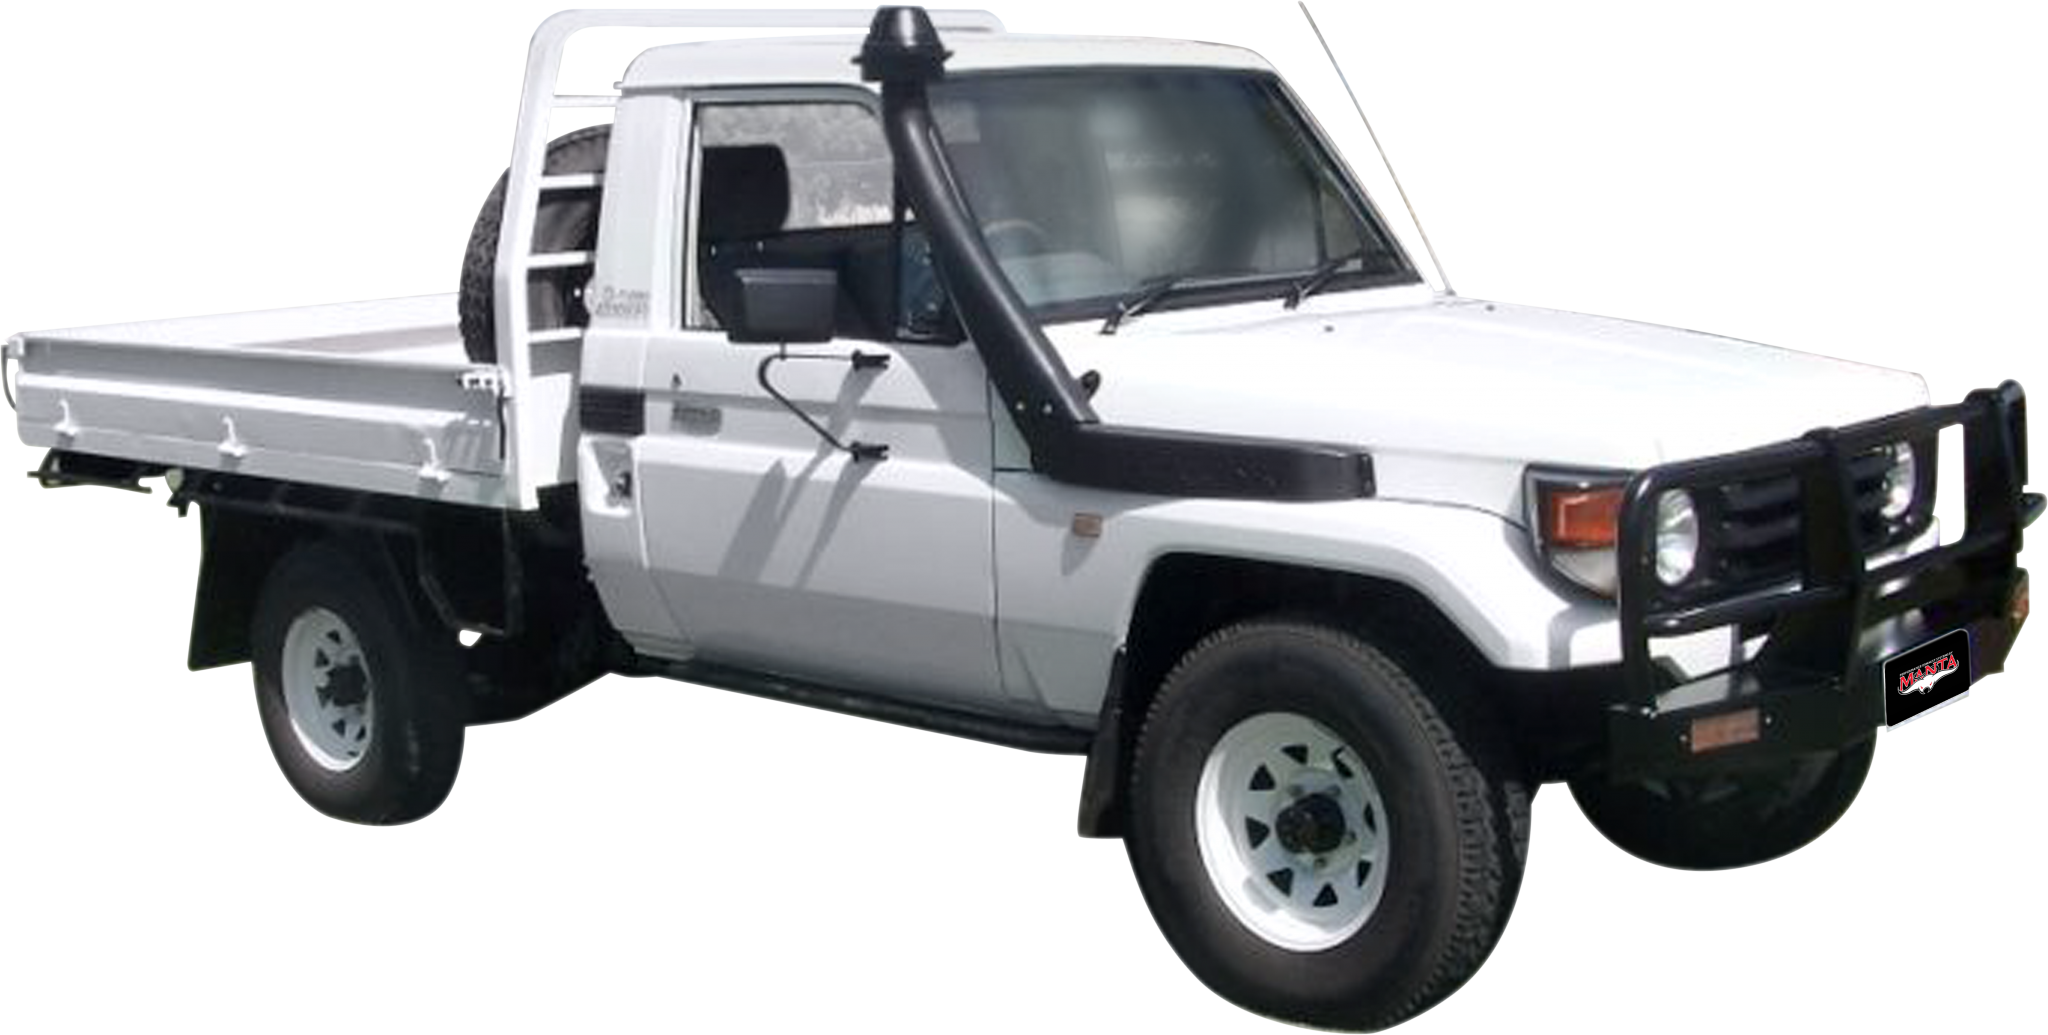 Image result for HDJ 79 series landcruiser